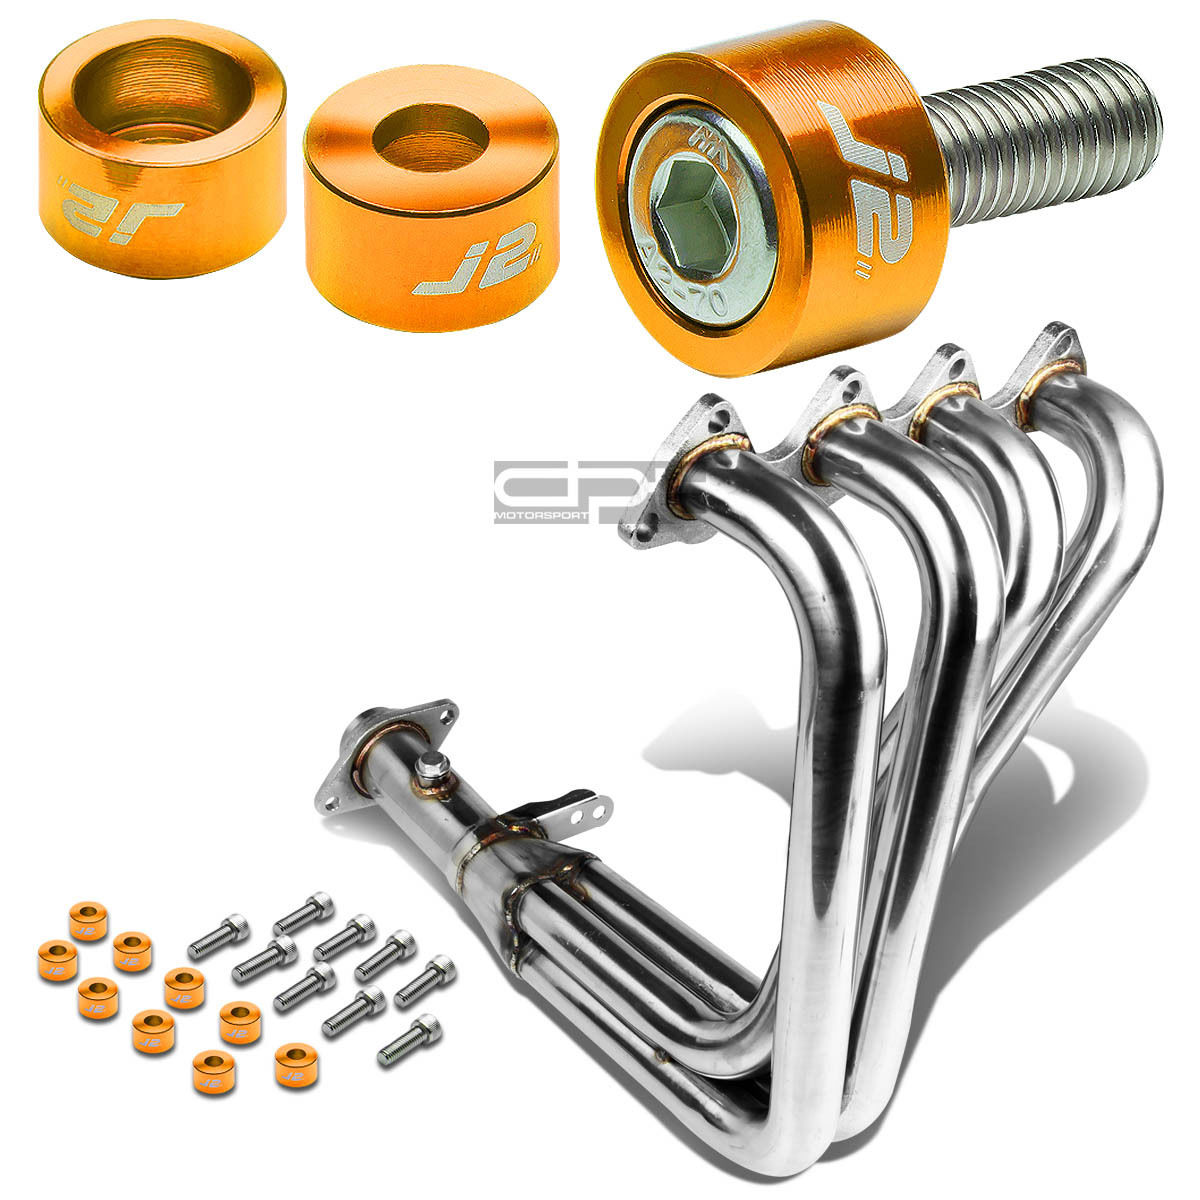 J2 FOR INTEGRA DC2 B18 EXHAUST MANIFOLD RACING HEADER+SILVER WASHER CUP BOLTS